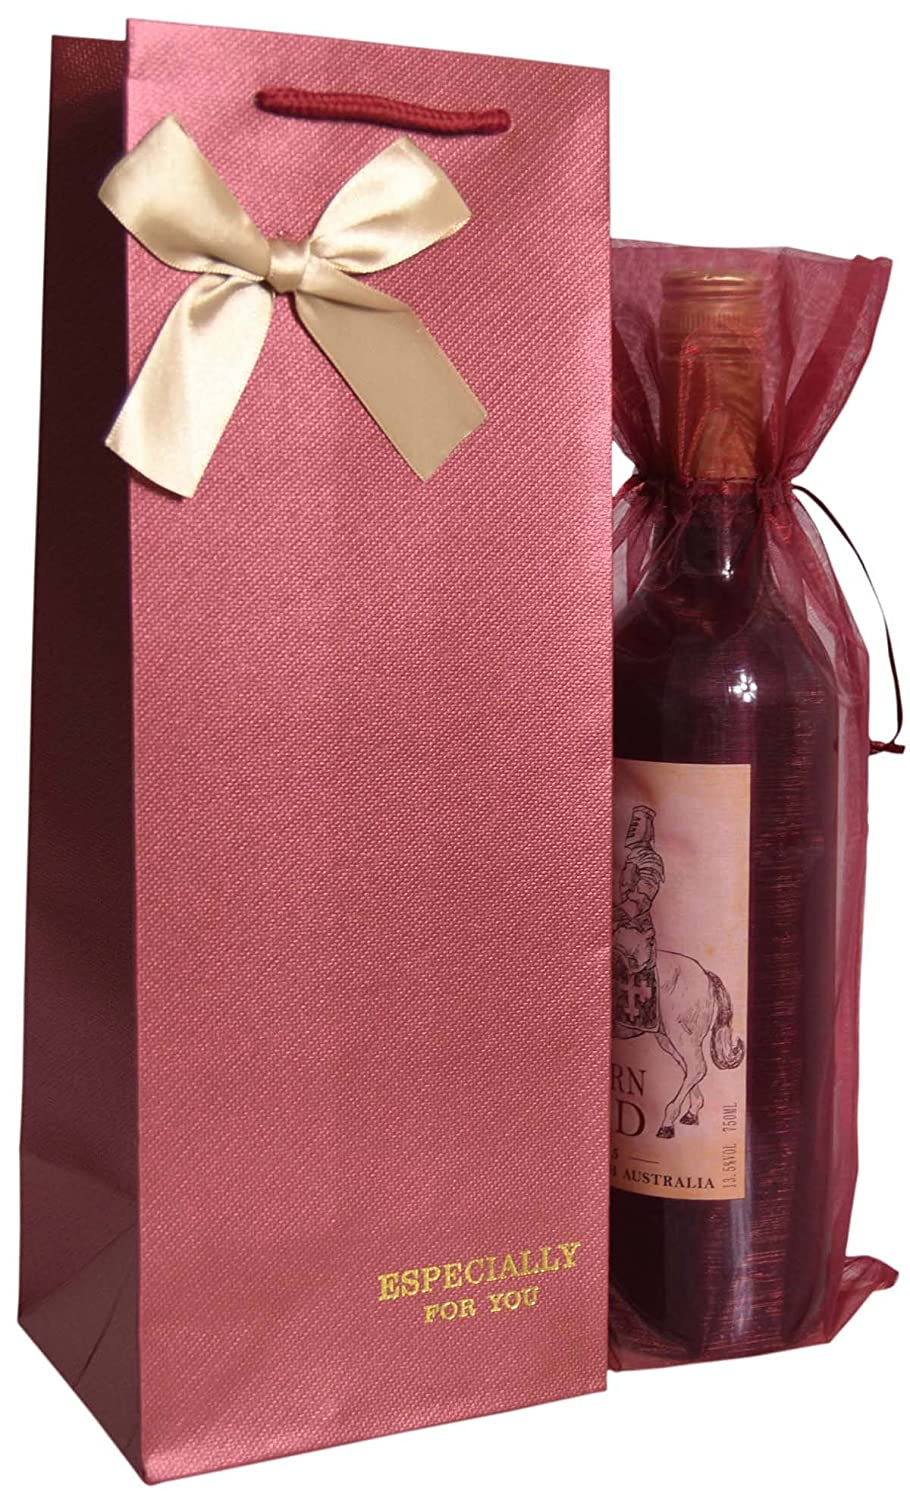 Amazon.com: Zealax Wine Gift Bags - Especially for You - 6 Pcs ...